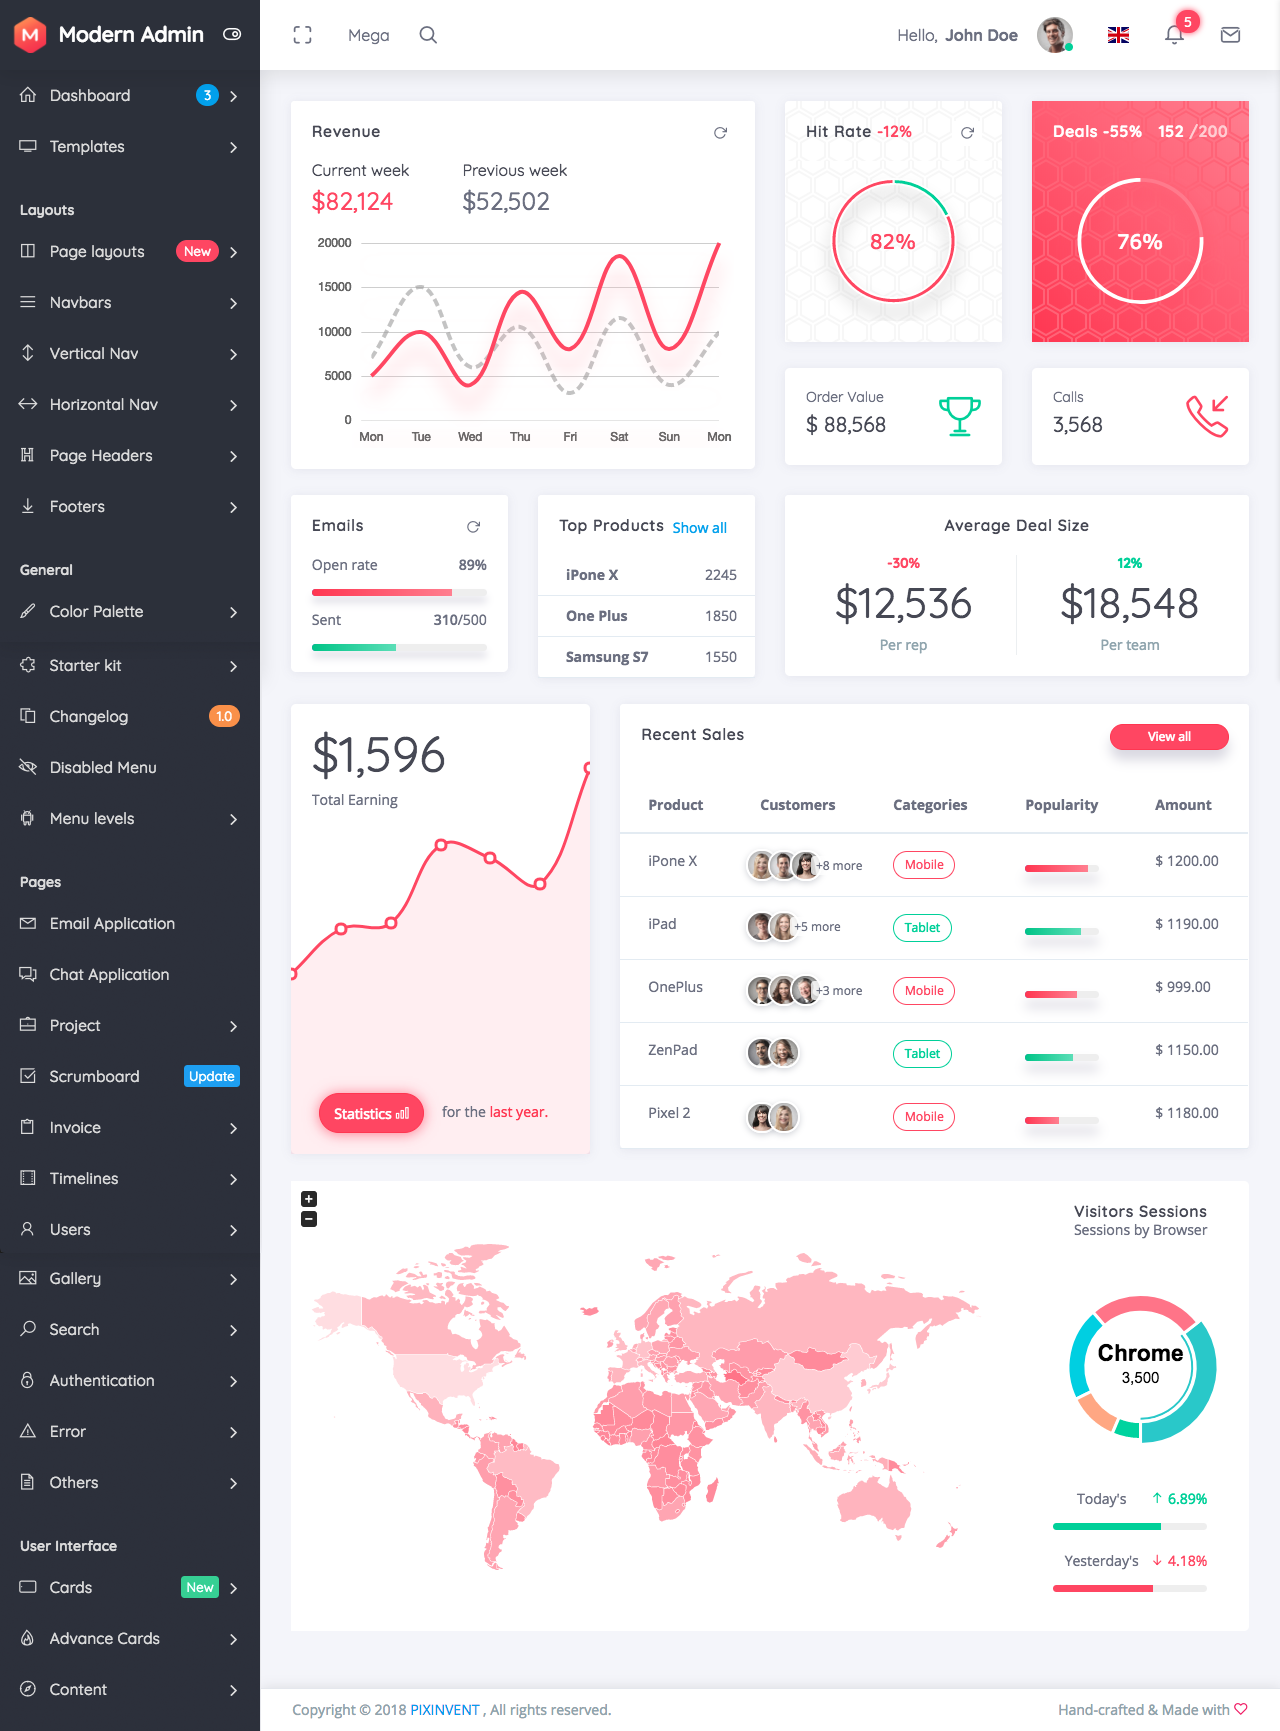 80+ Best Free Bootstrap Admin Templates 2018 For WebApp - PIXINVENT